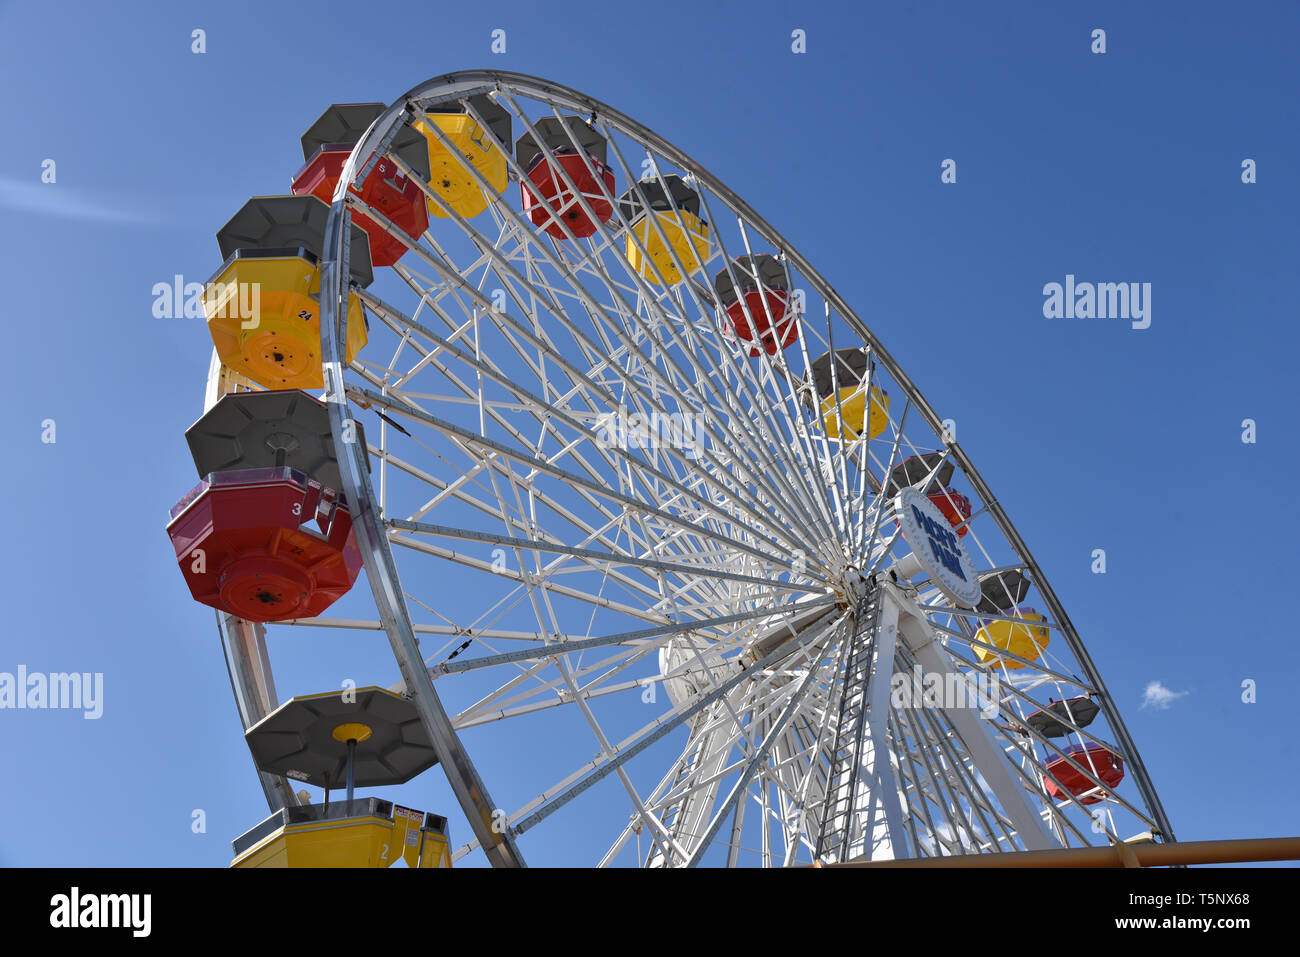 LOS ANGELES, CA/USA  - APRIL 11, 2019: The ferris wheel at Pacific Park on the Santa Monica Pier, a famous tourist attraction - Stock Image